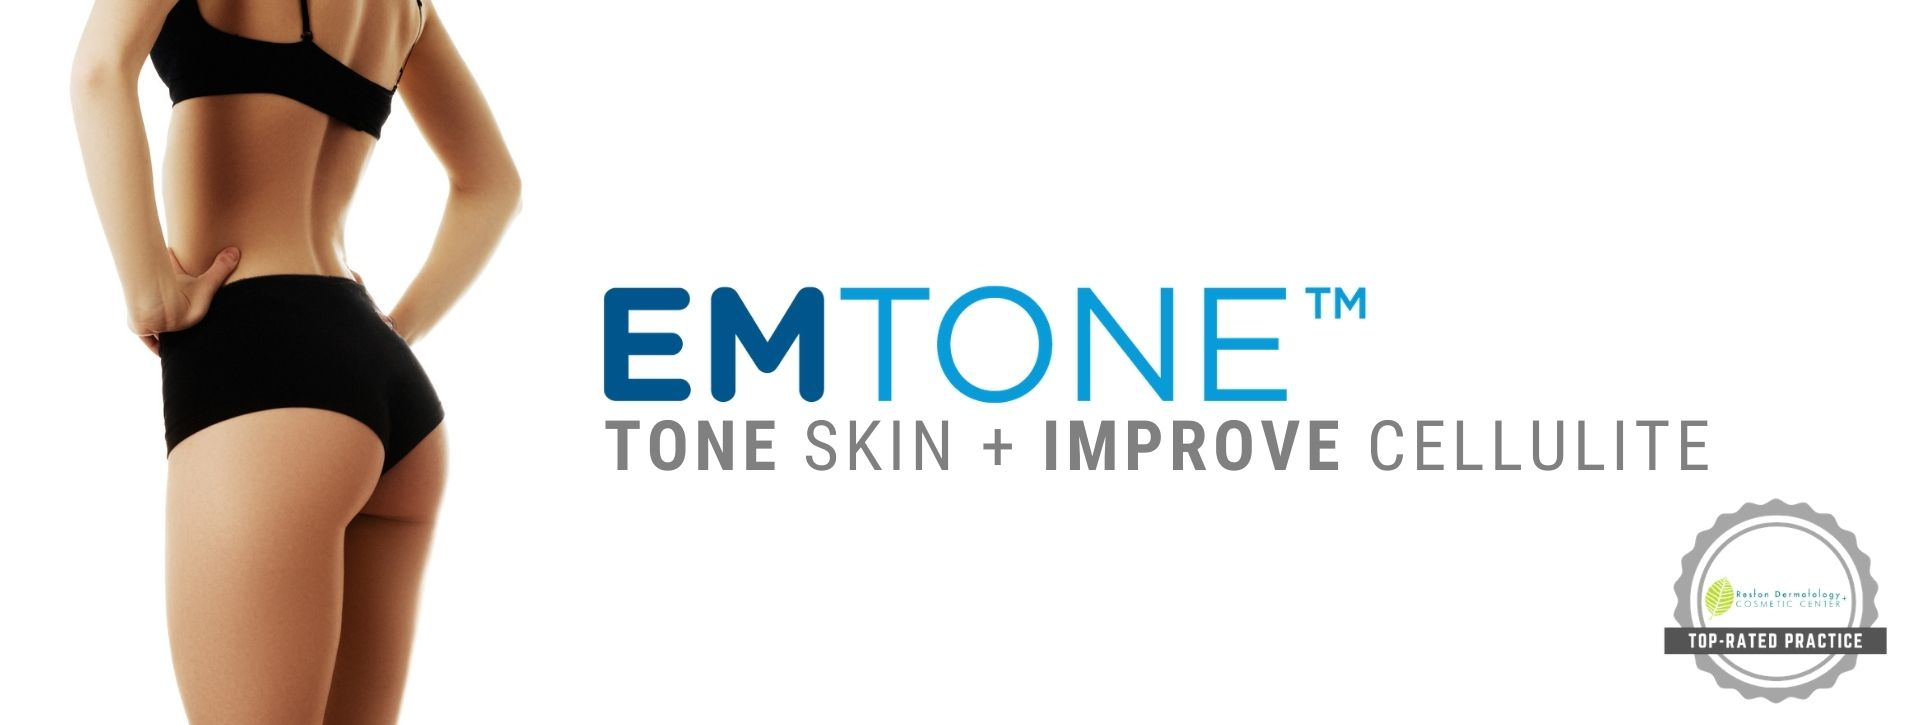 woman with beautiful buttocks without cellulites after Emtone treatment in Reston